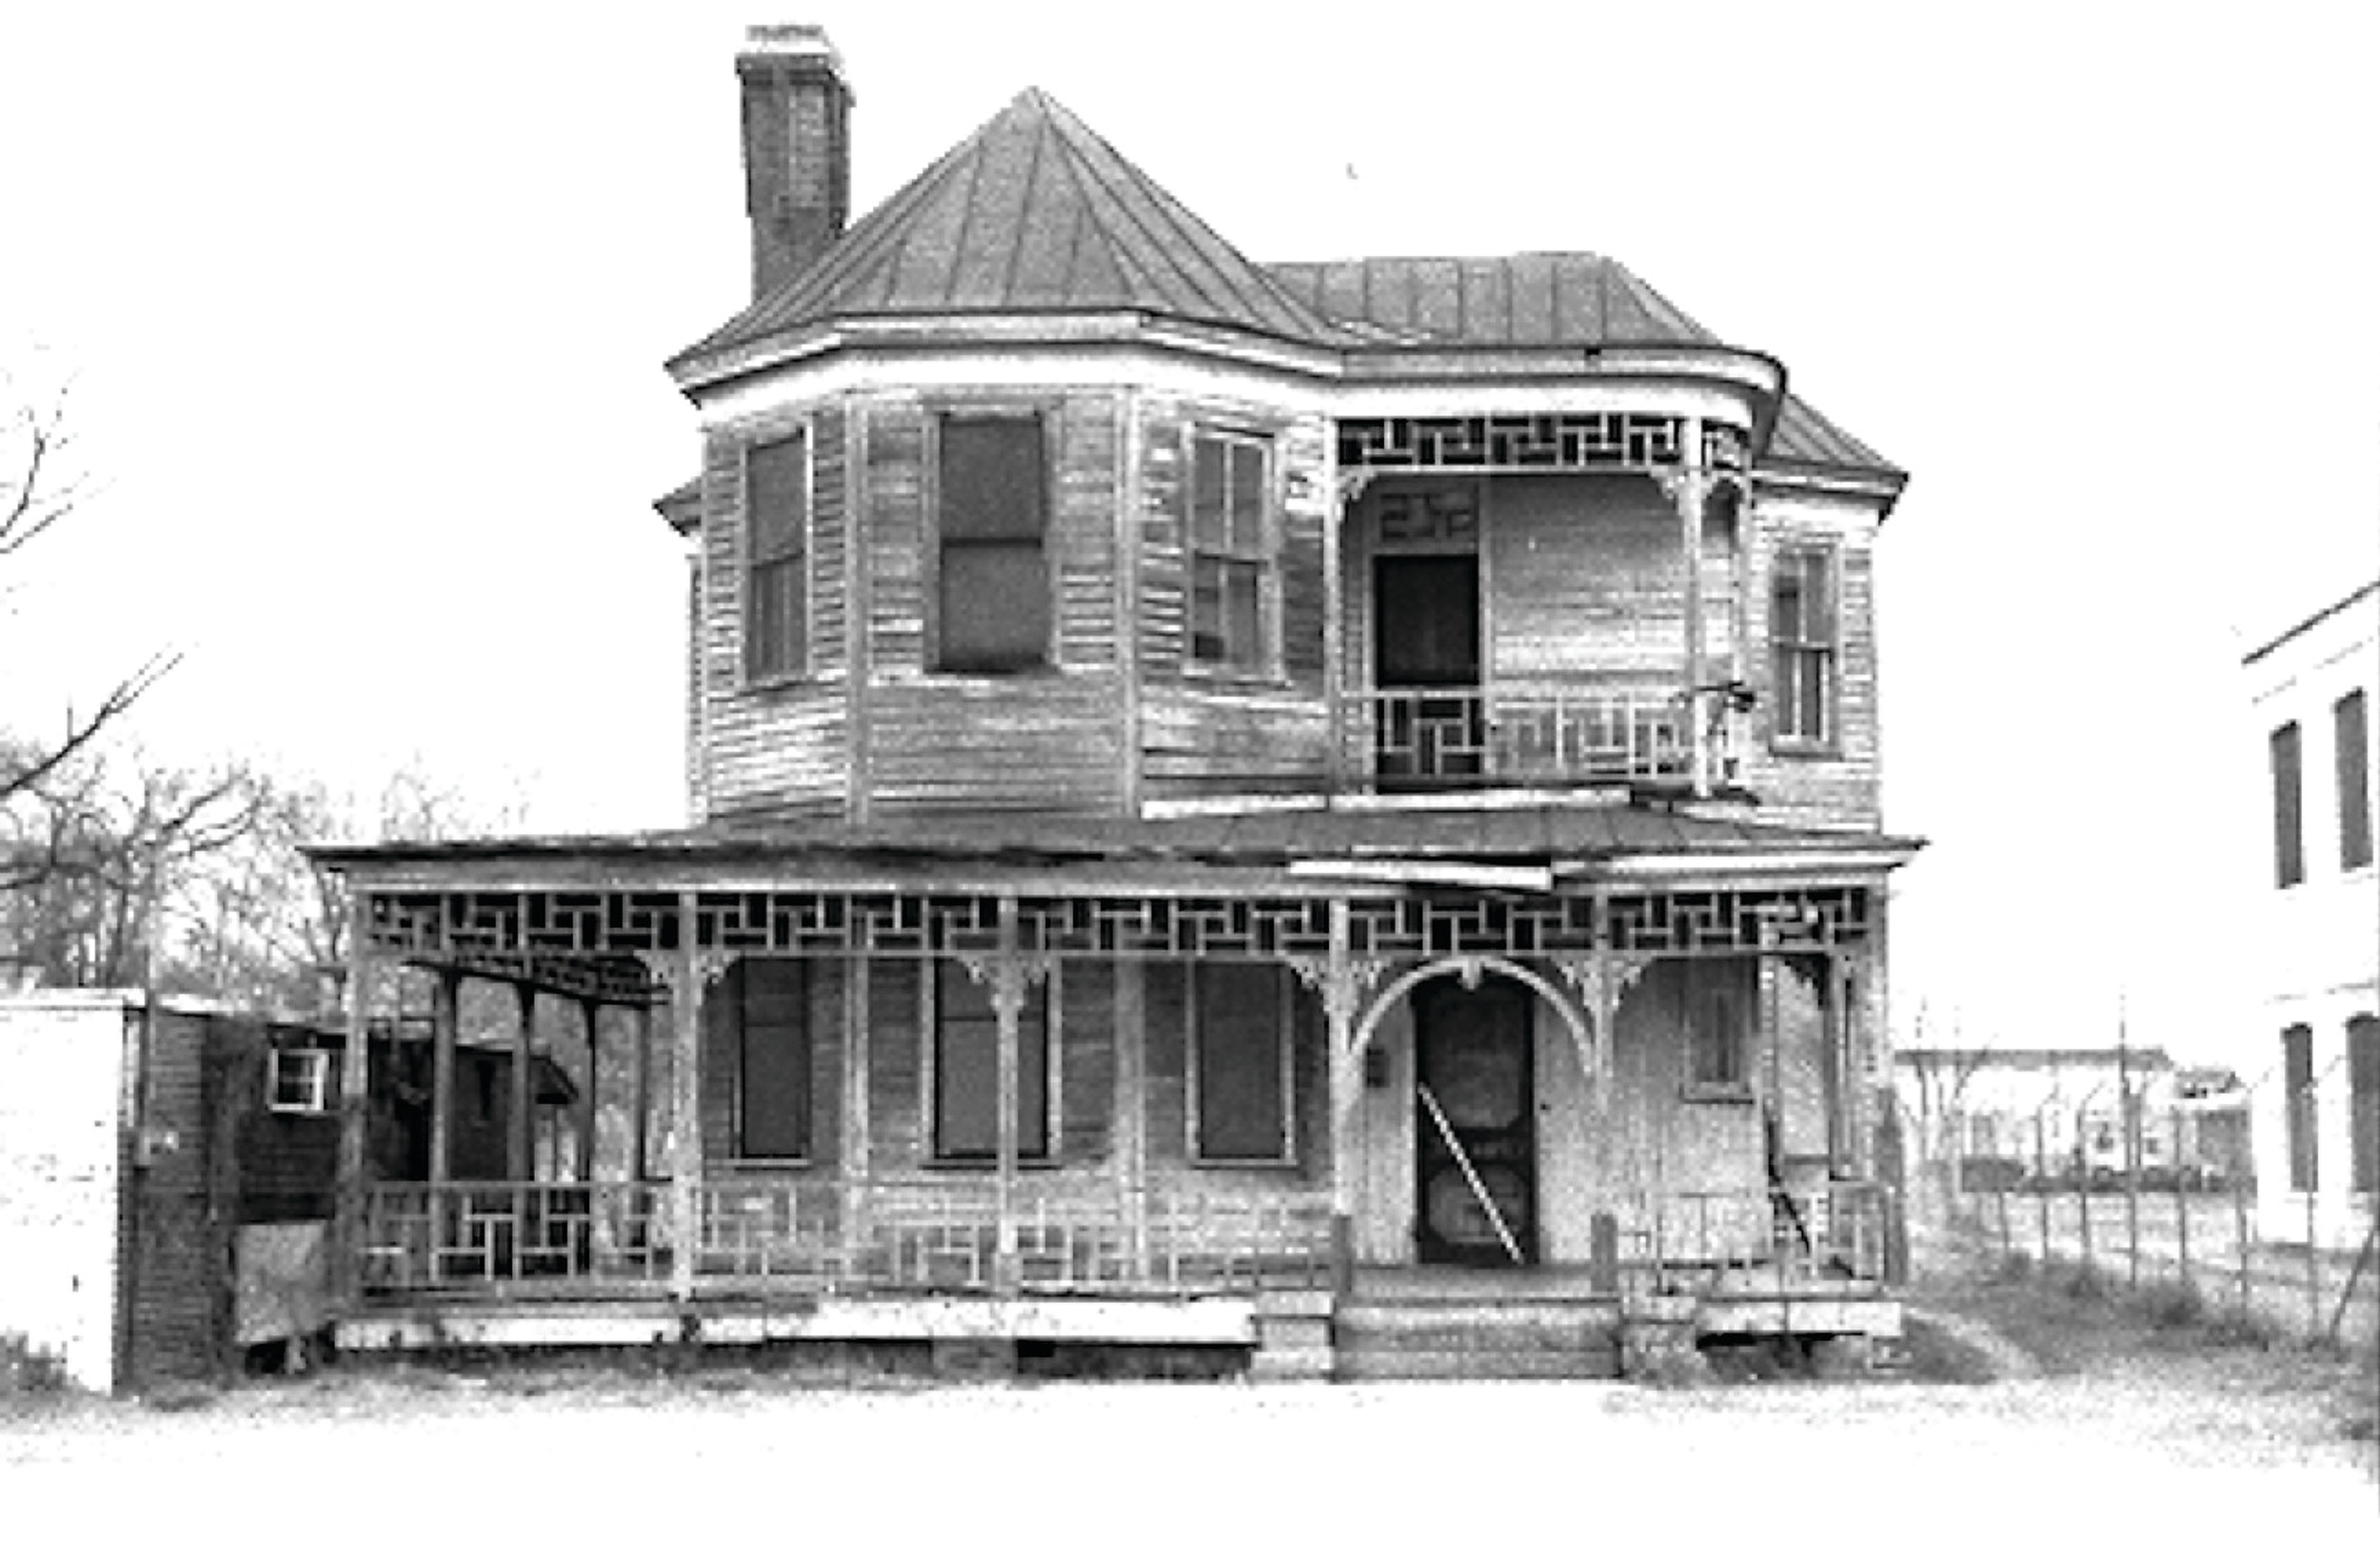 One of the early houses on Harvin Street is seen. Six generations of Bossard's family lived at 23 S. Harvin St., beginning with his granddaughter Frances Conyers Smith.